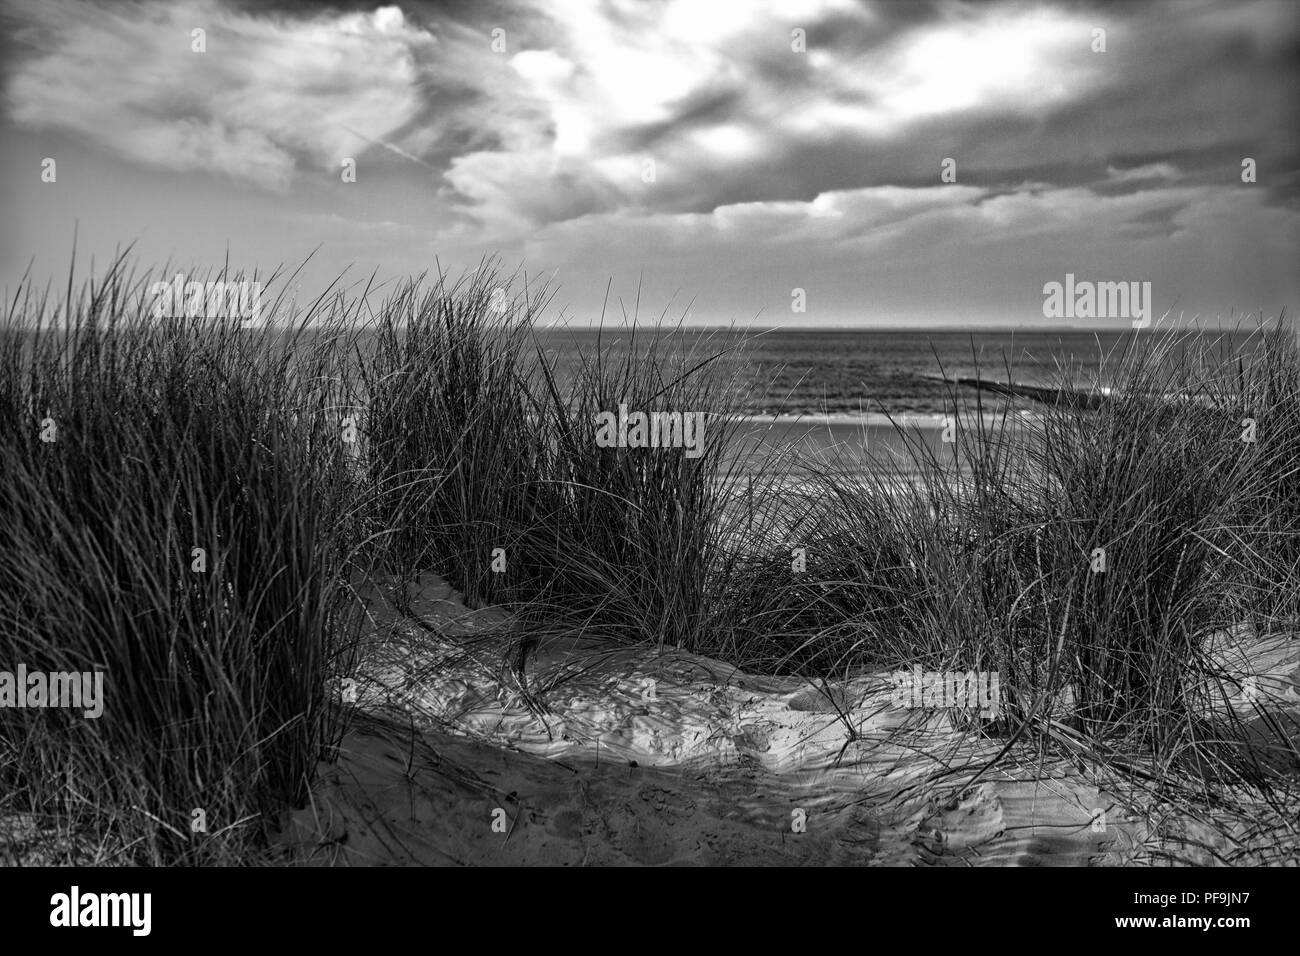 Europa Germany Nordsee Instagramm Style - Stock Image